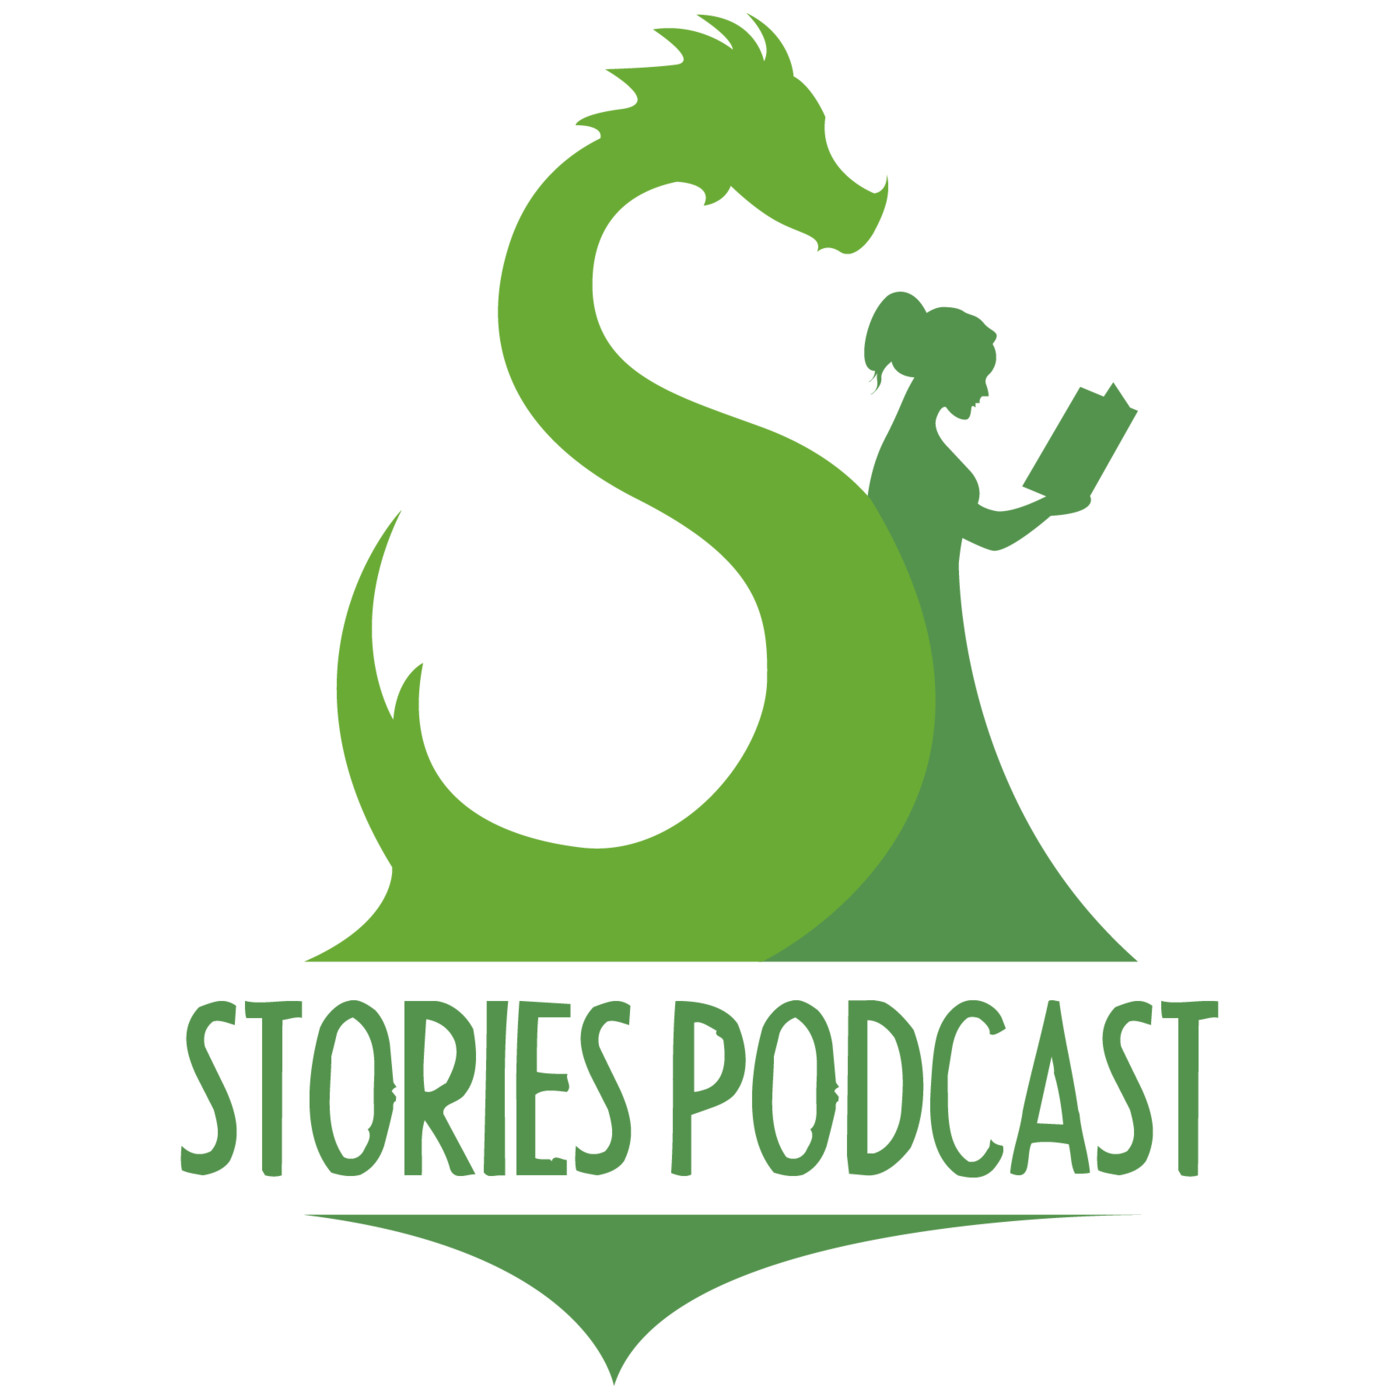 """Stories Podcast: A Bedtime Show for Kids of All Ages"" Podcast"